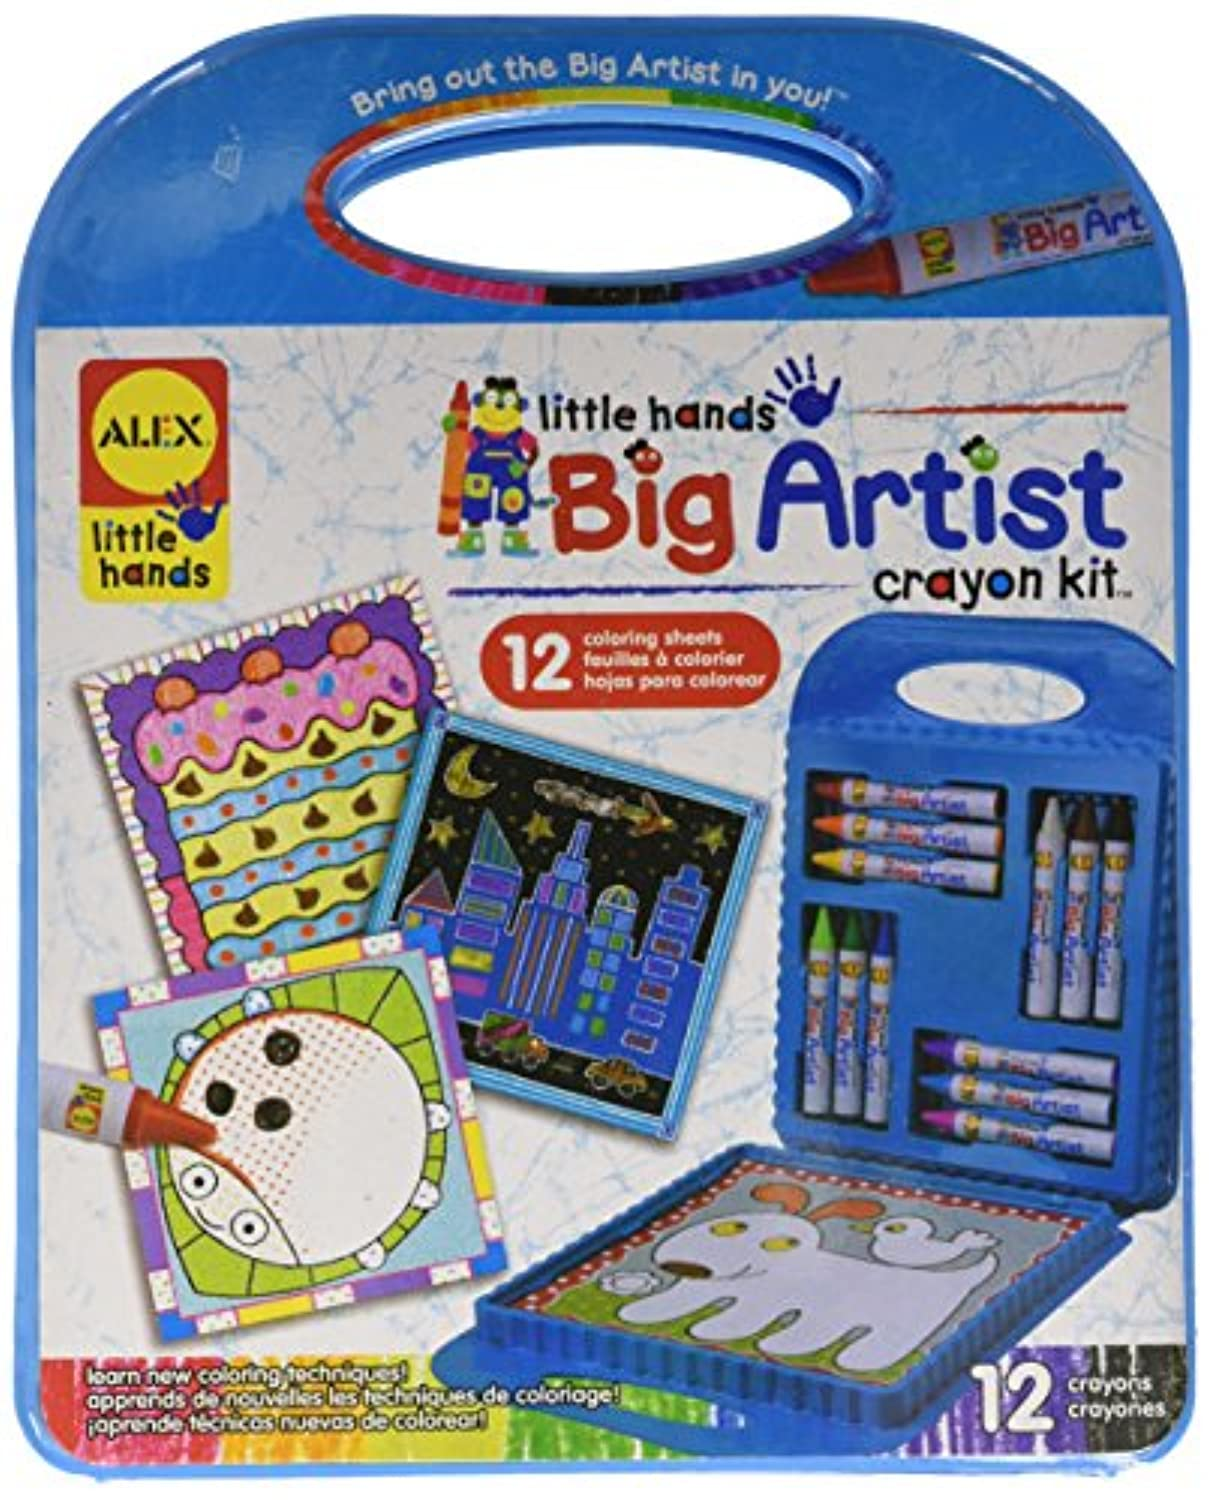 Alex Toys Little Hands Big Artist Seriesクレヨンキット